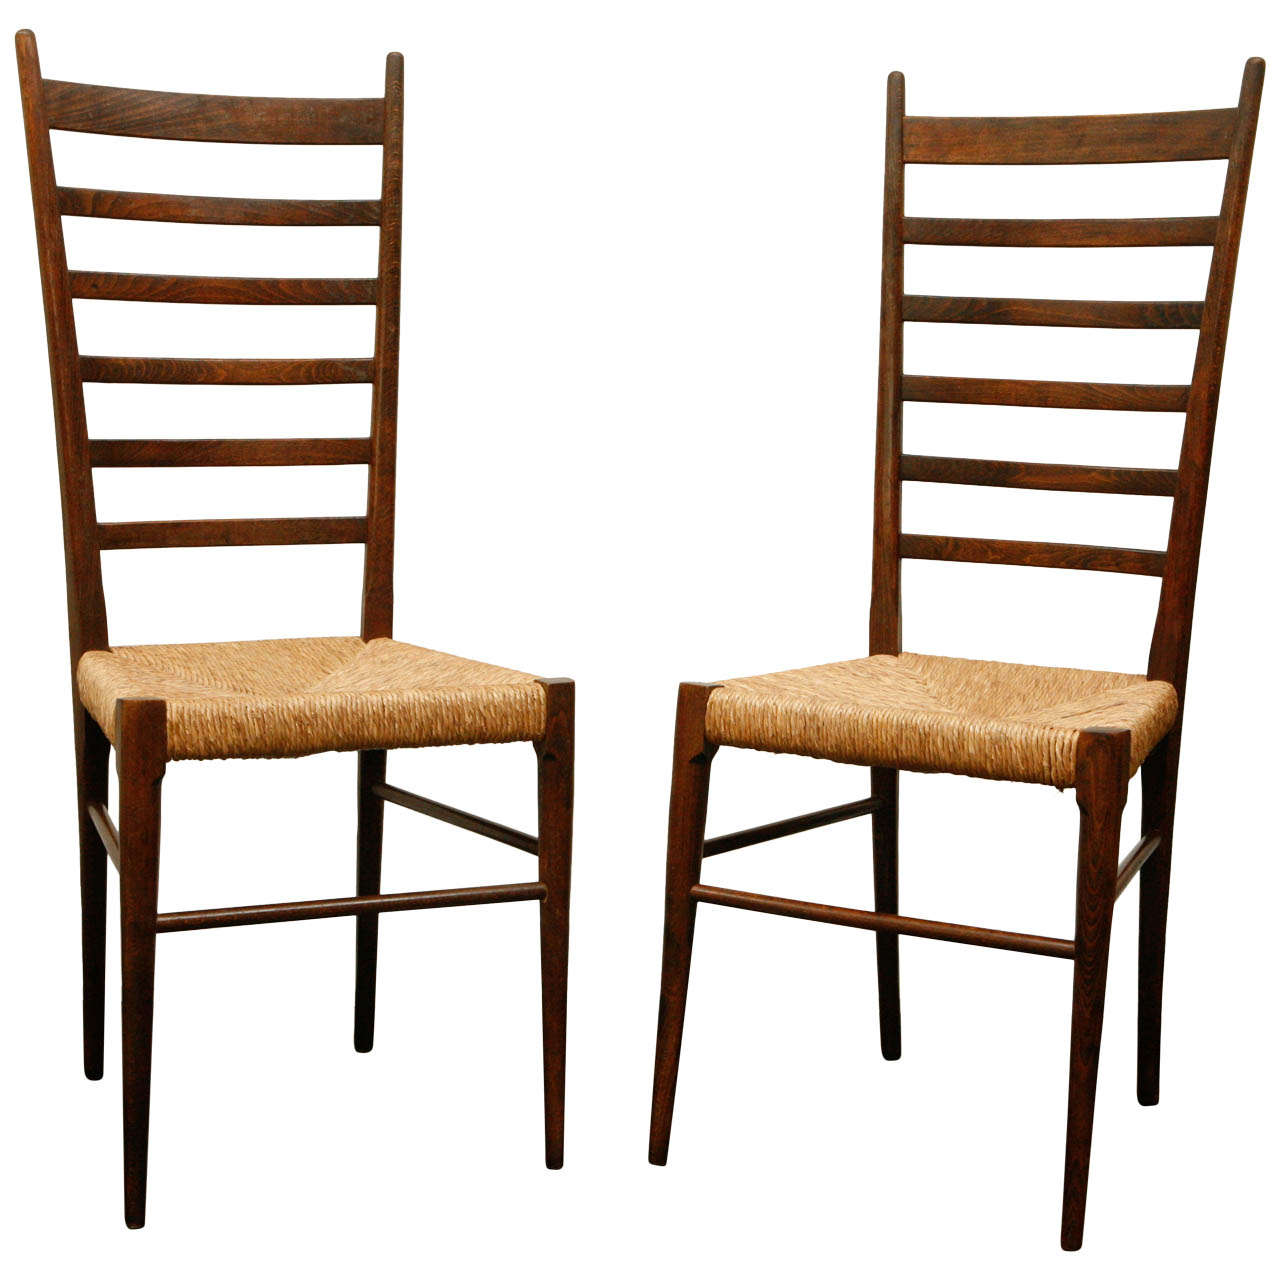 Unique Pair of Italian Ladder-Back Chairs with Woven Seats at 1stdibs JZ51